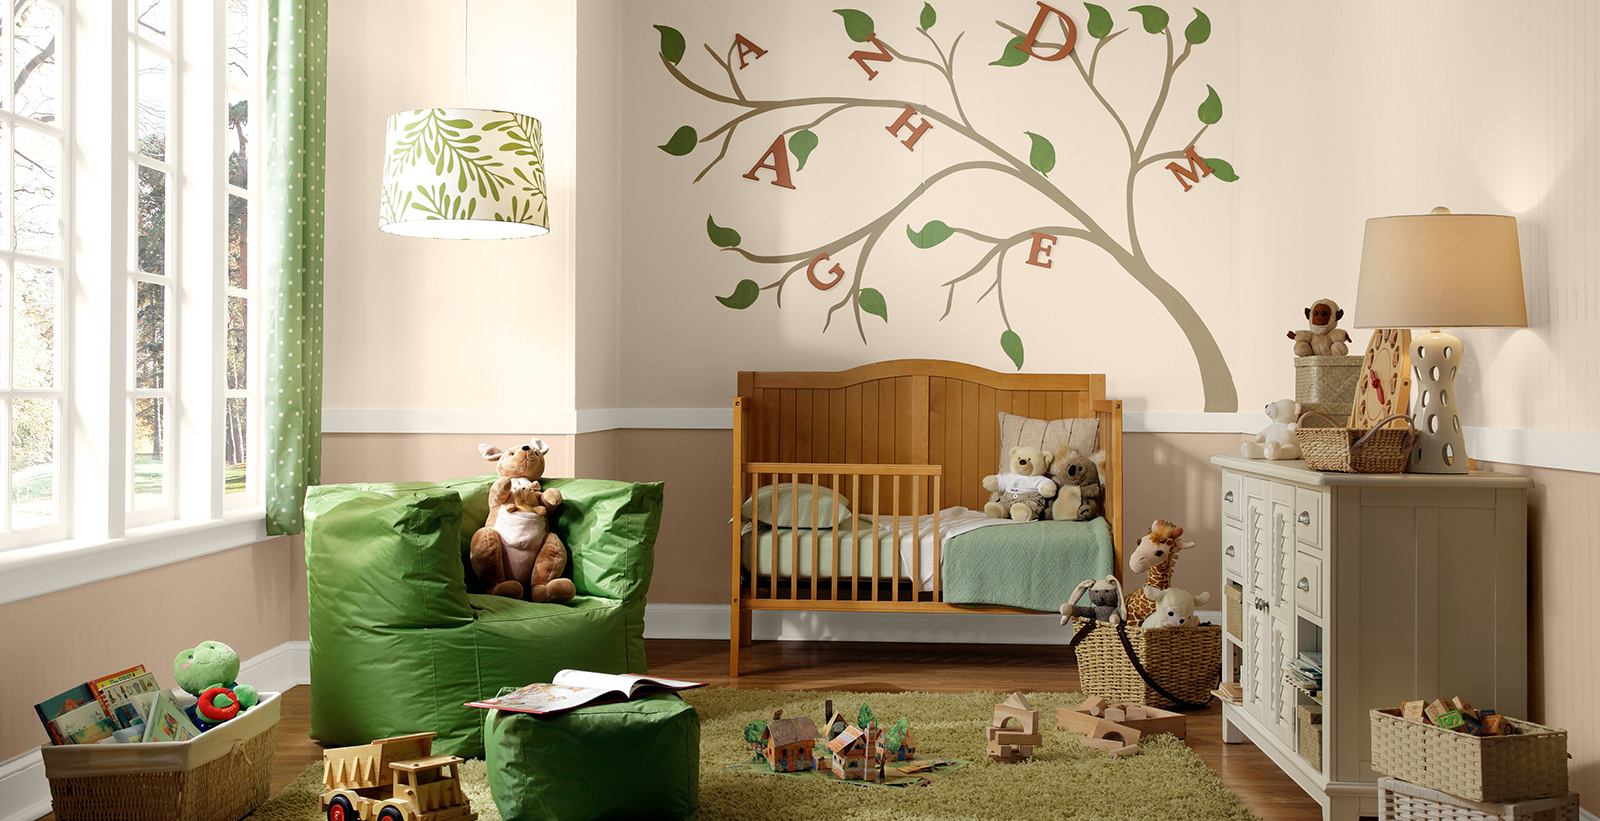 Relaxed and calming styled youth nursery room with light brown walls, white on the trim, wooden toddler bed, and painted tree.